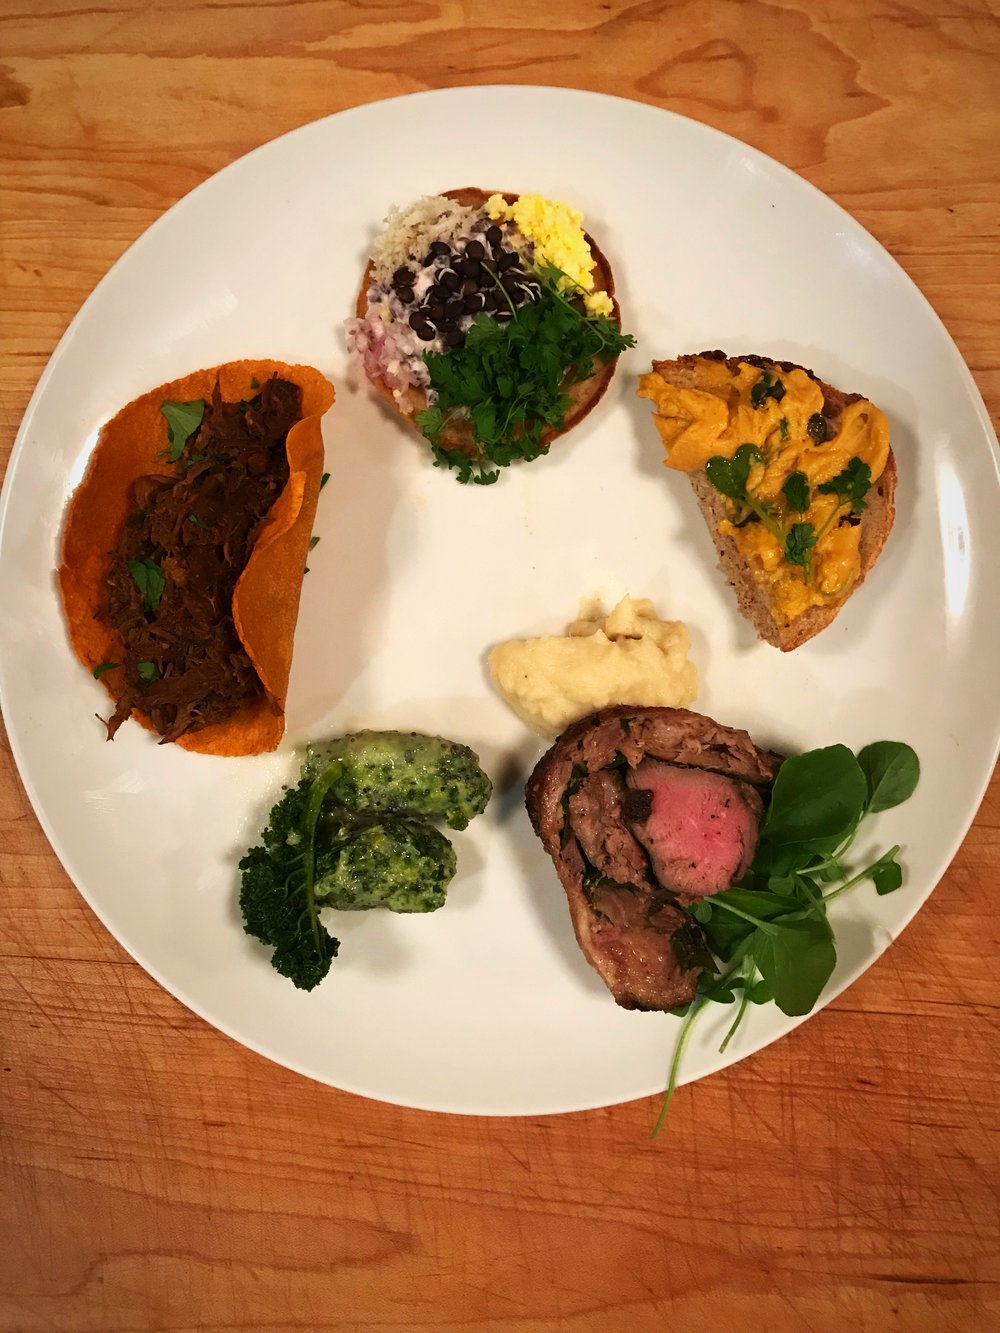 Each of the First Five Course from the January Farm to Table Dinner: Carrot Butter on Sourdough; Rye Blini with Sprouted Lentils; Venison Barbacoa; Kale Malfatti; and Duck Roulade